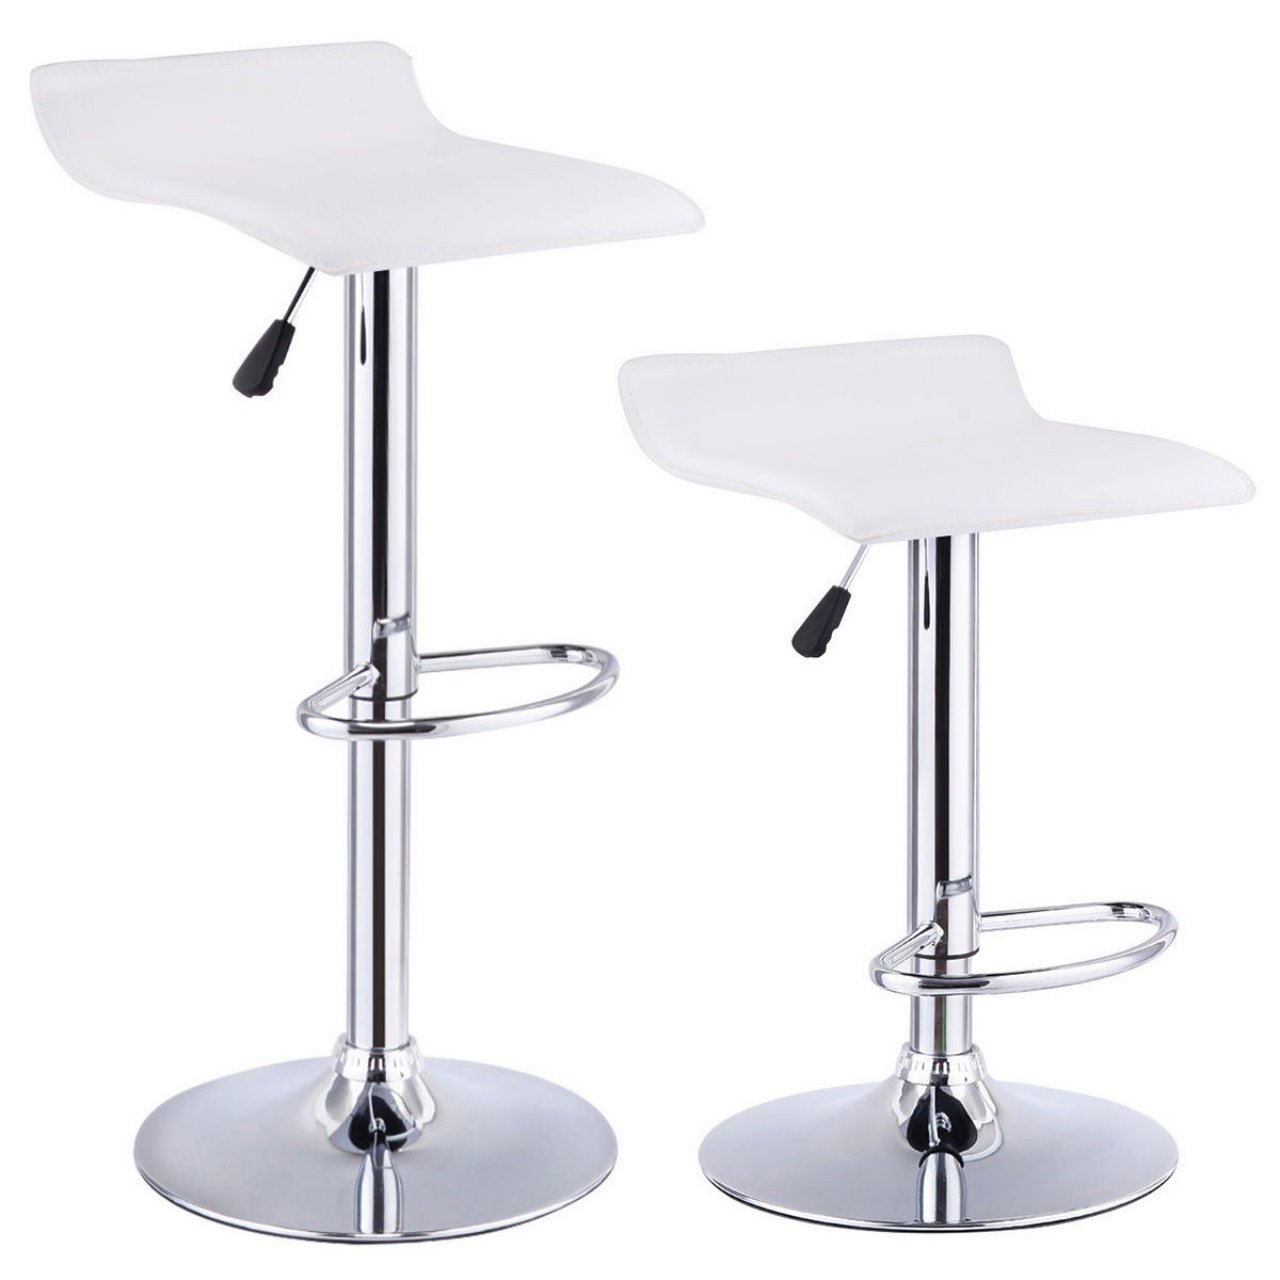 Set Of 2 Swivel Bar Stools Adjustable Waterproof Anti-aging PU Leather Backless Dining Bar Chair Square White #715